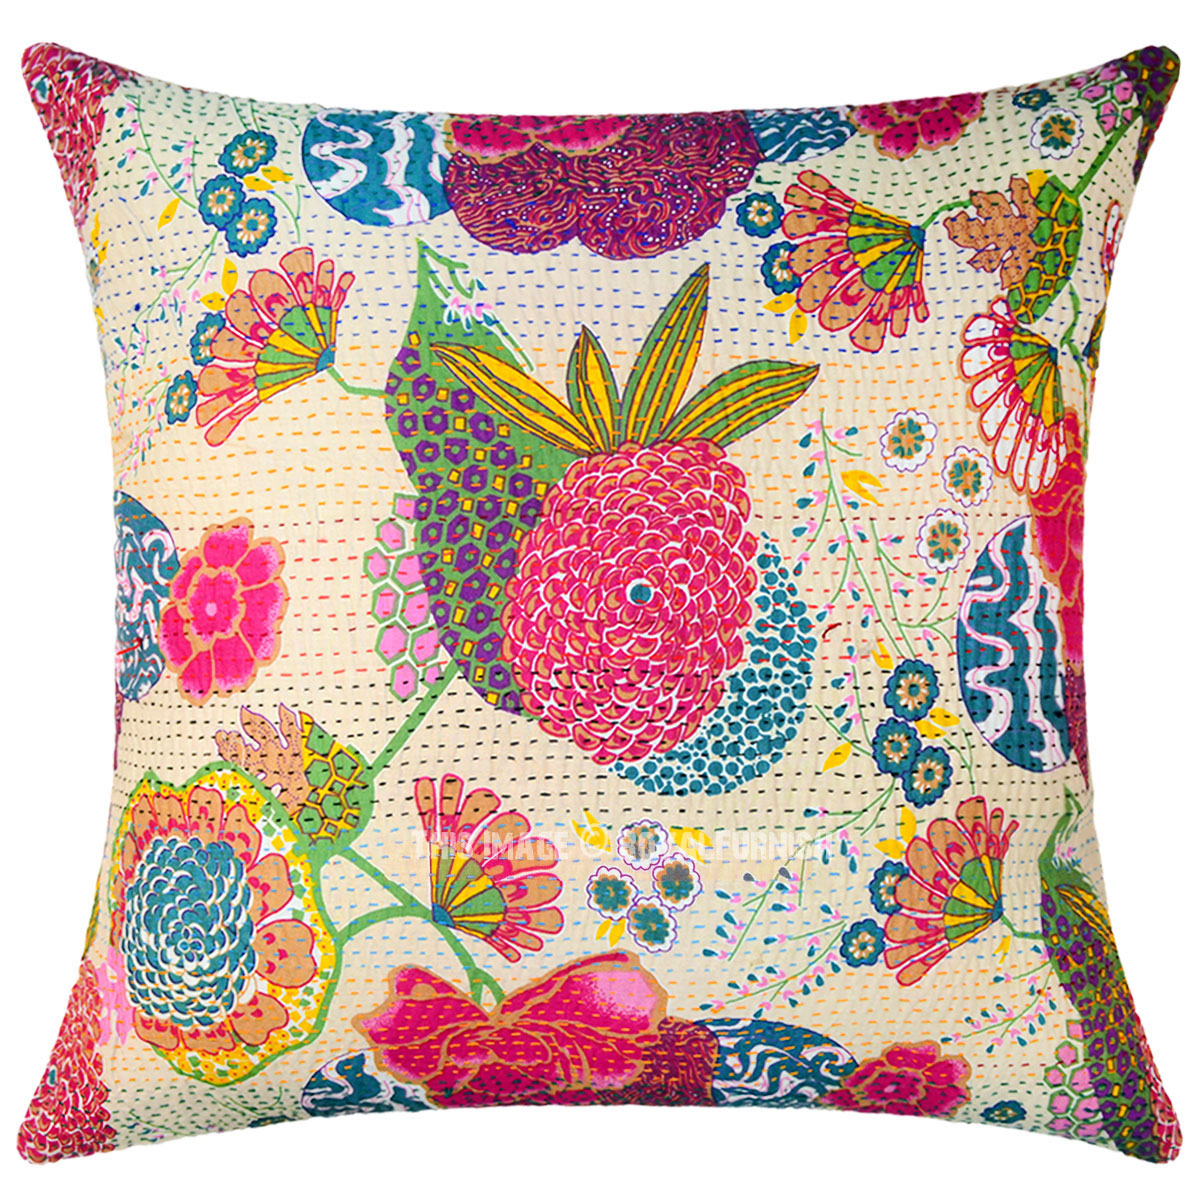 Unique Decorative Throw Pillows : Beige Color Decorative Unique Kantha Square Throw Pillow Cover 24X24 Inch - RoyalFurnish.com